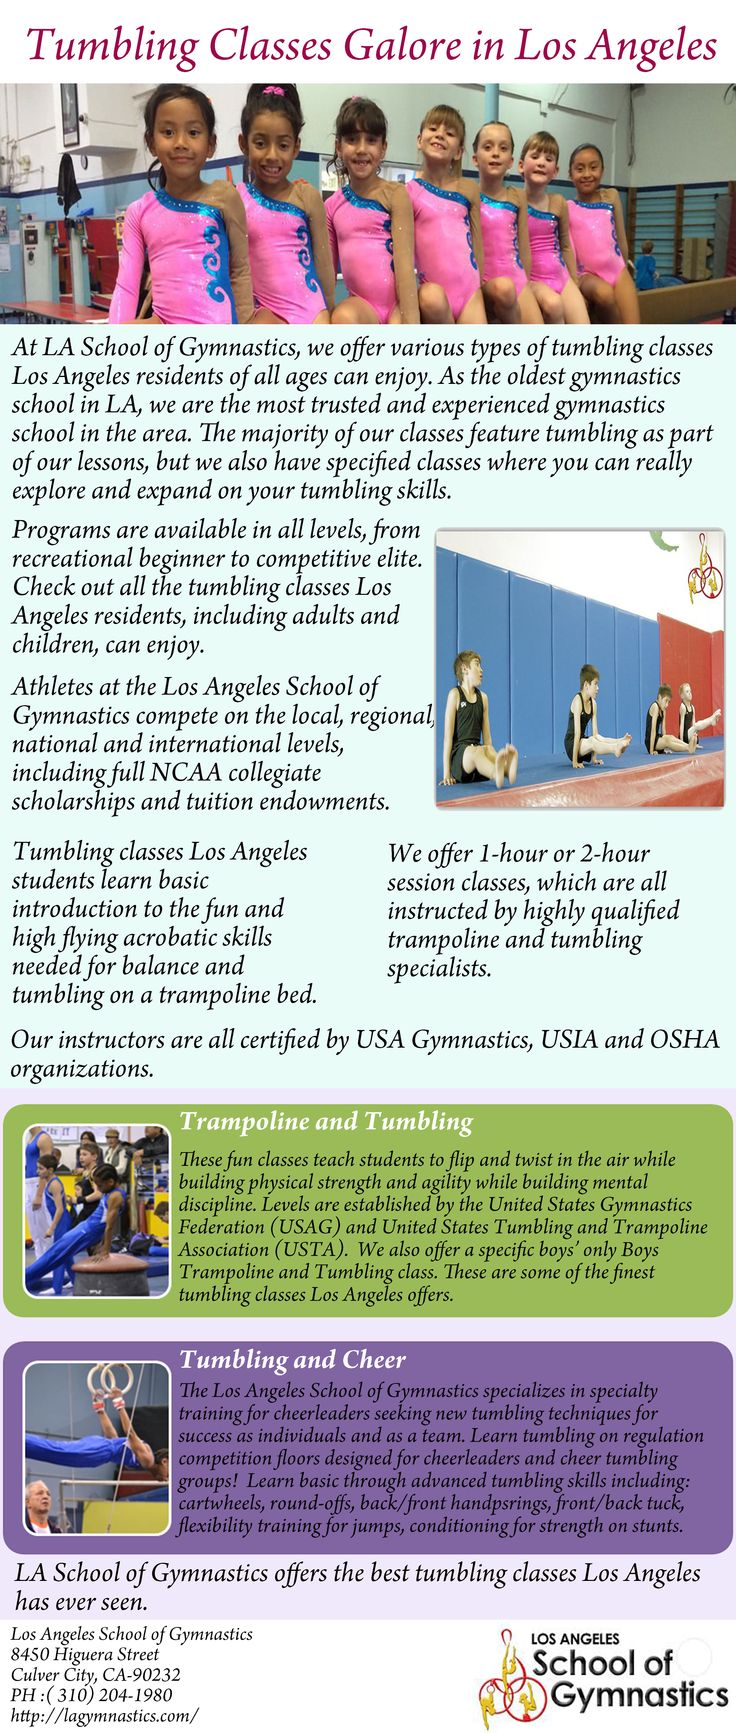 As the oldest gymnastics school in LA, we are the most trusted and experienced gymnastics school in the area.Log on http://lagymnastics.com/